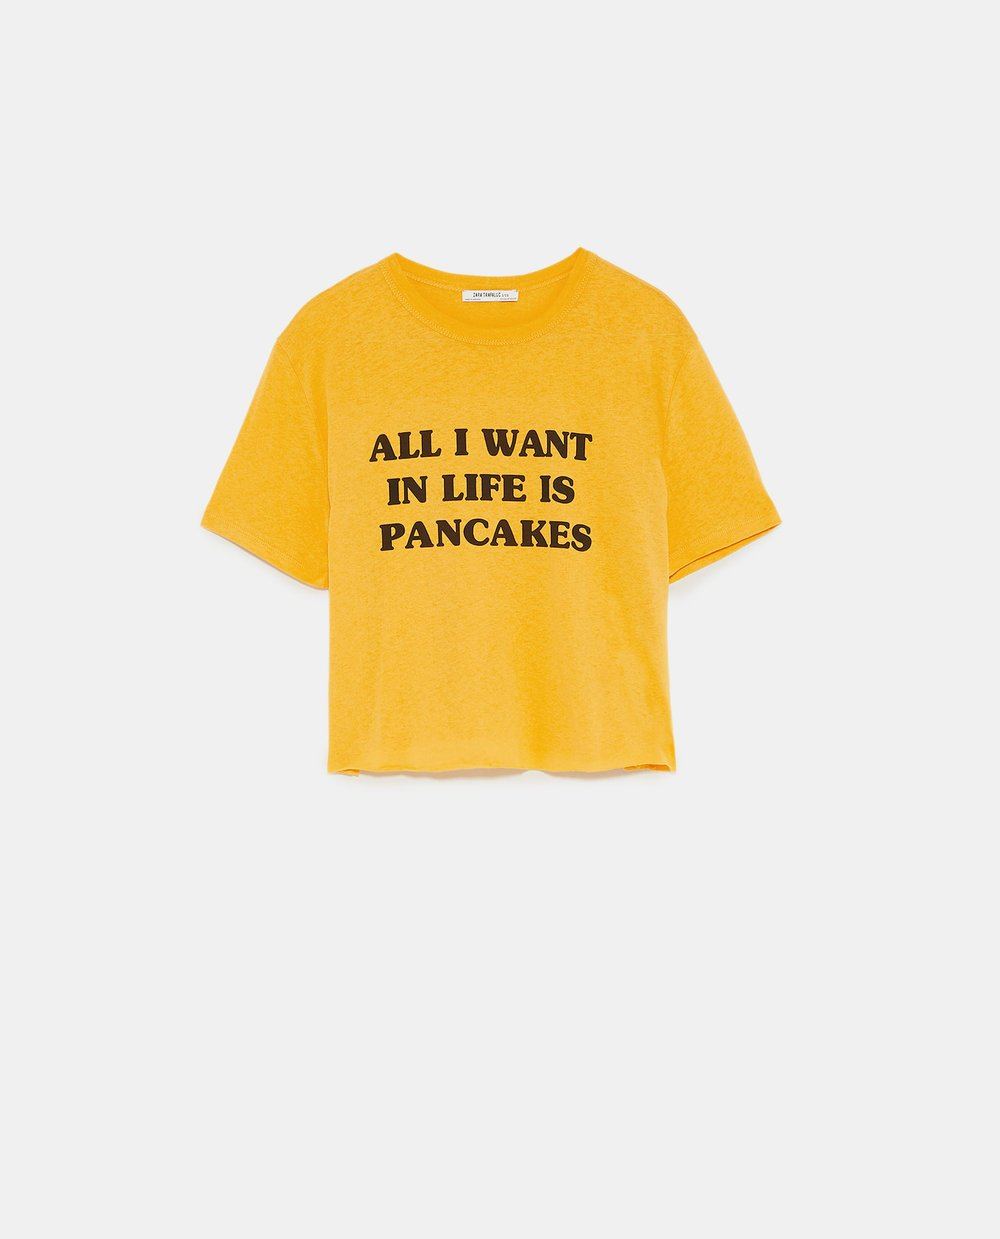 Inspired by the previously mentioned weekend, I now own this shirt. (via zara)